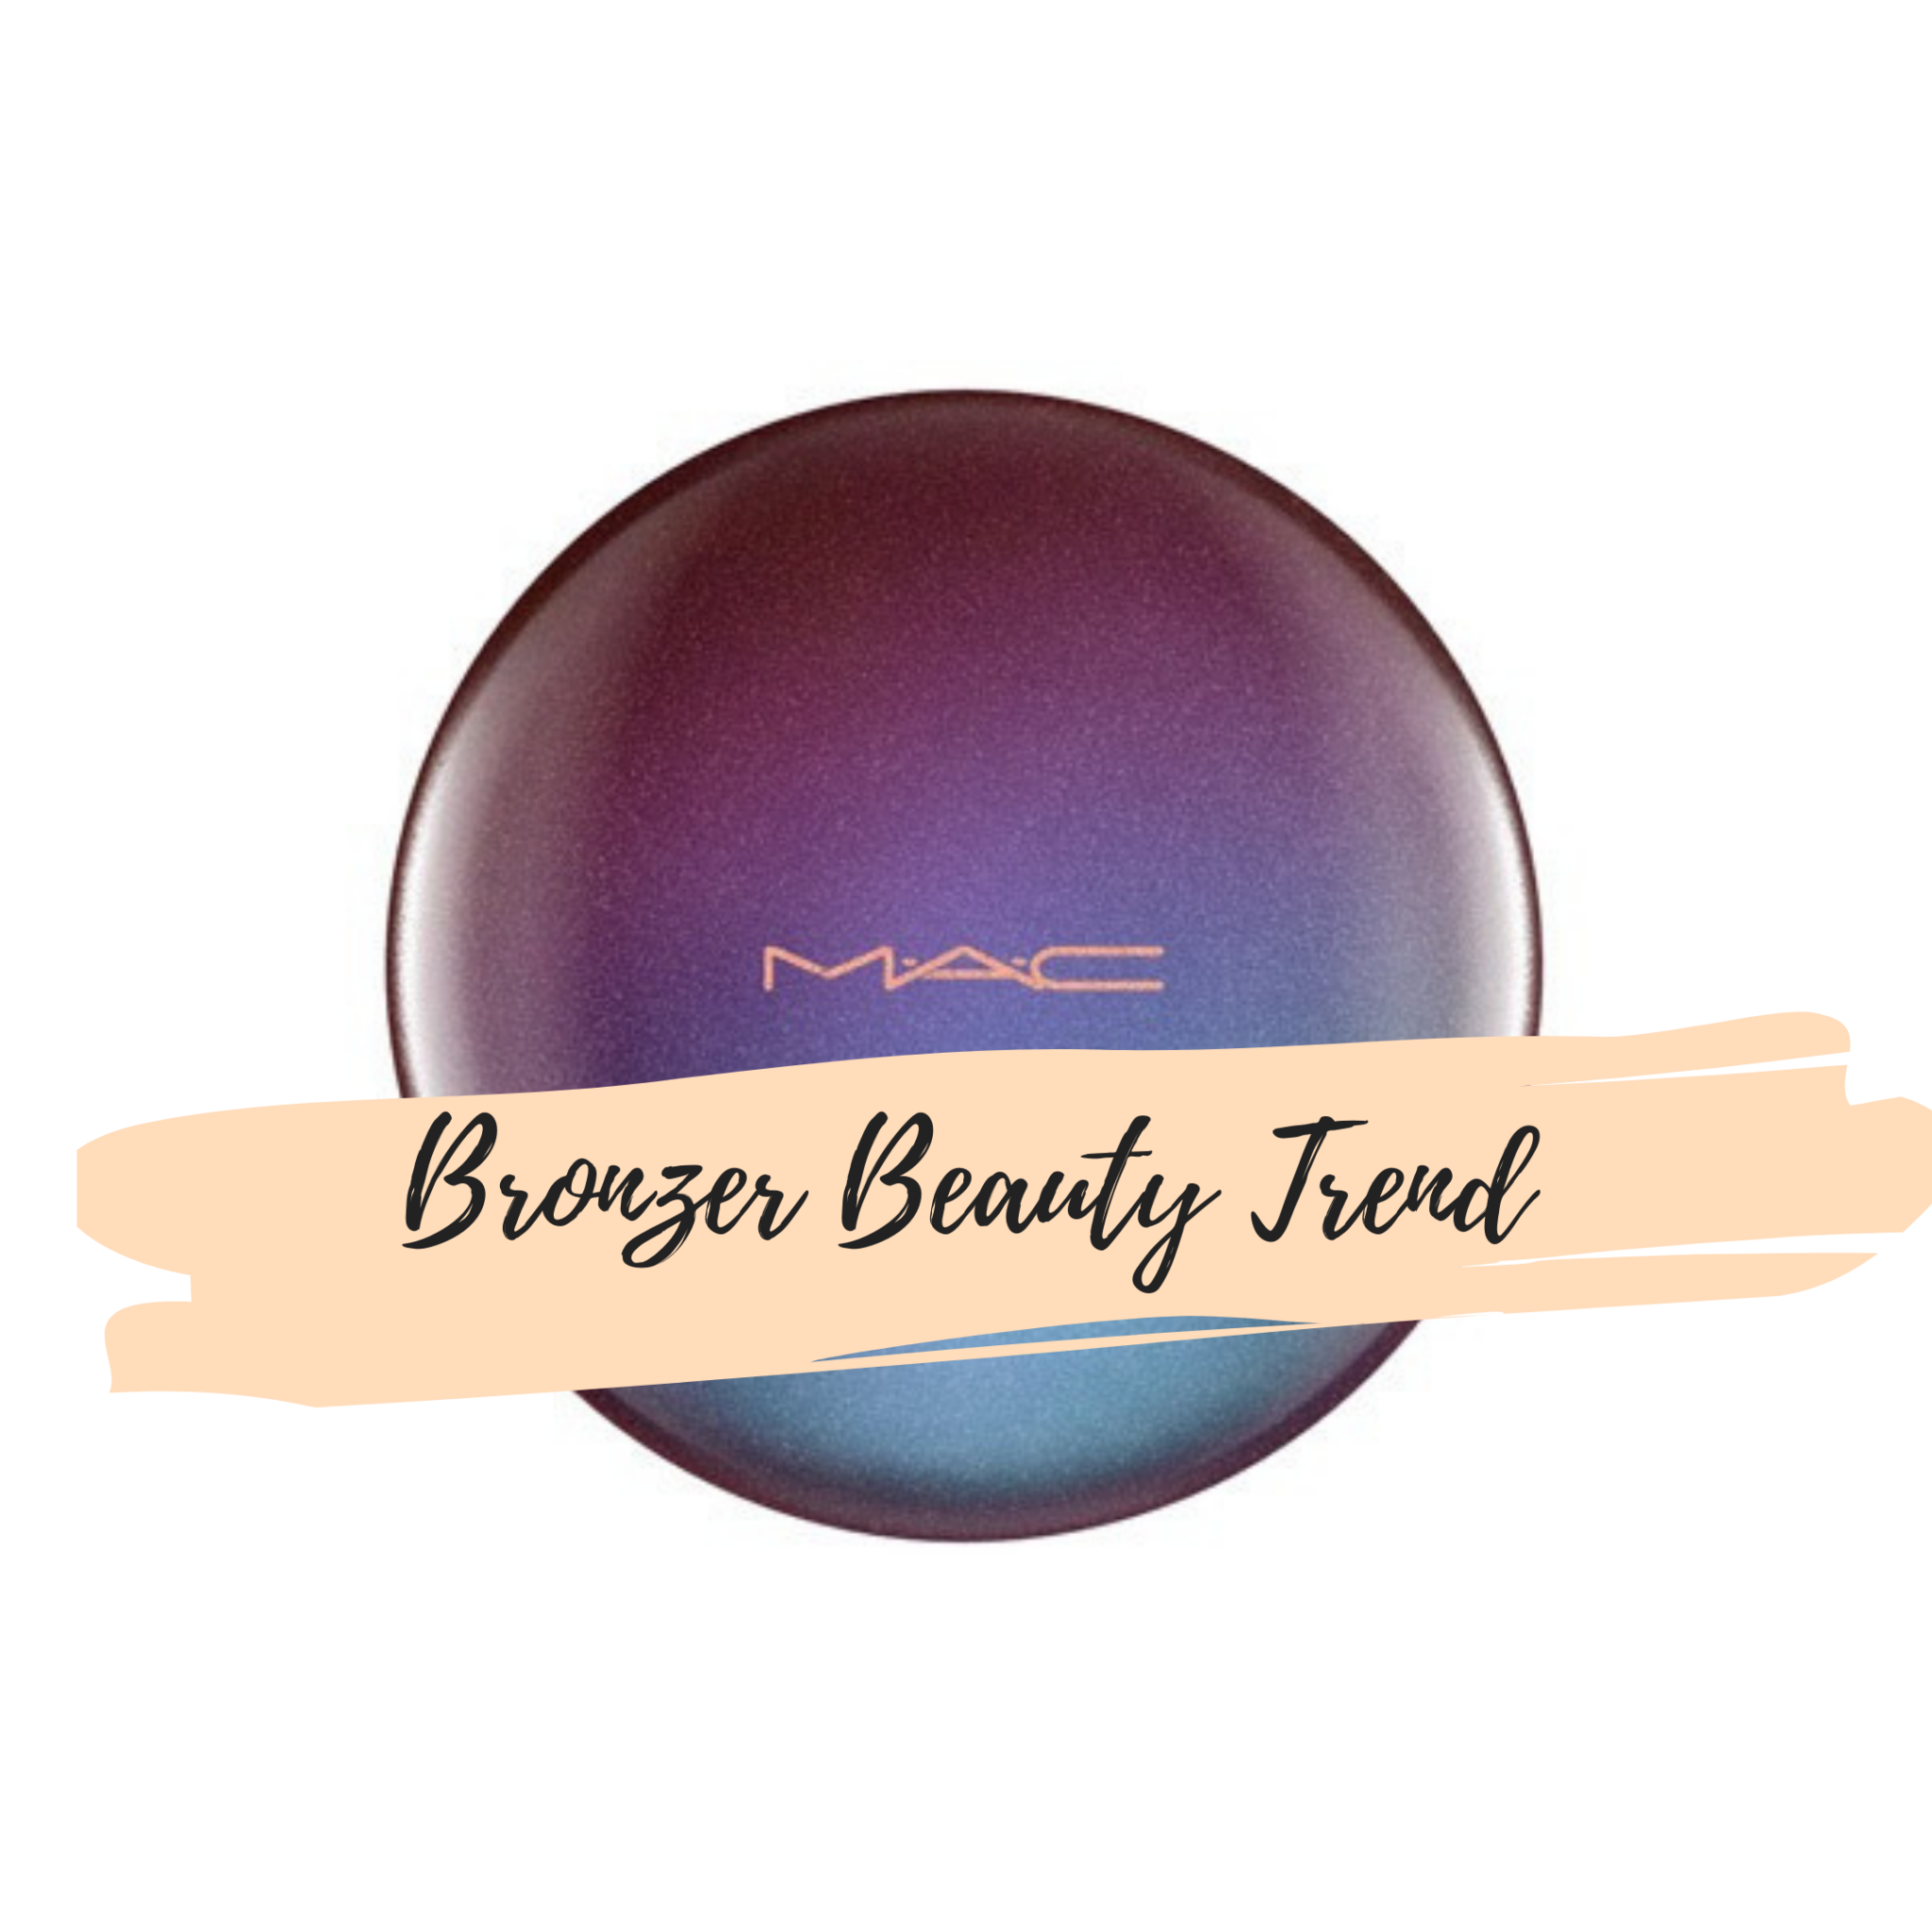 Bronzer Beauty Trend